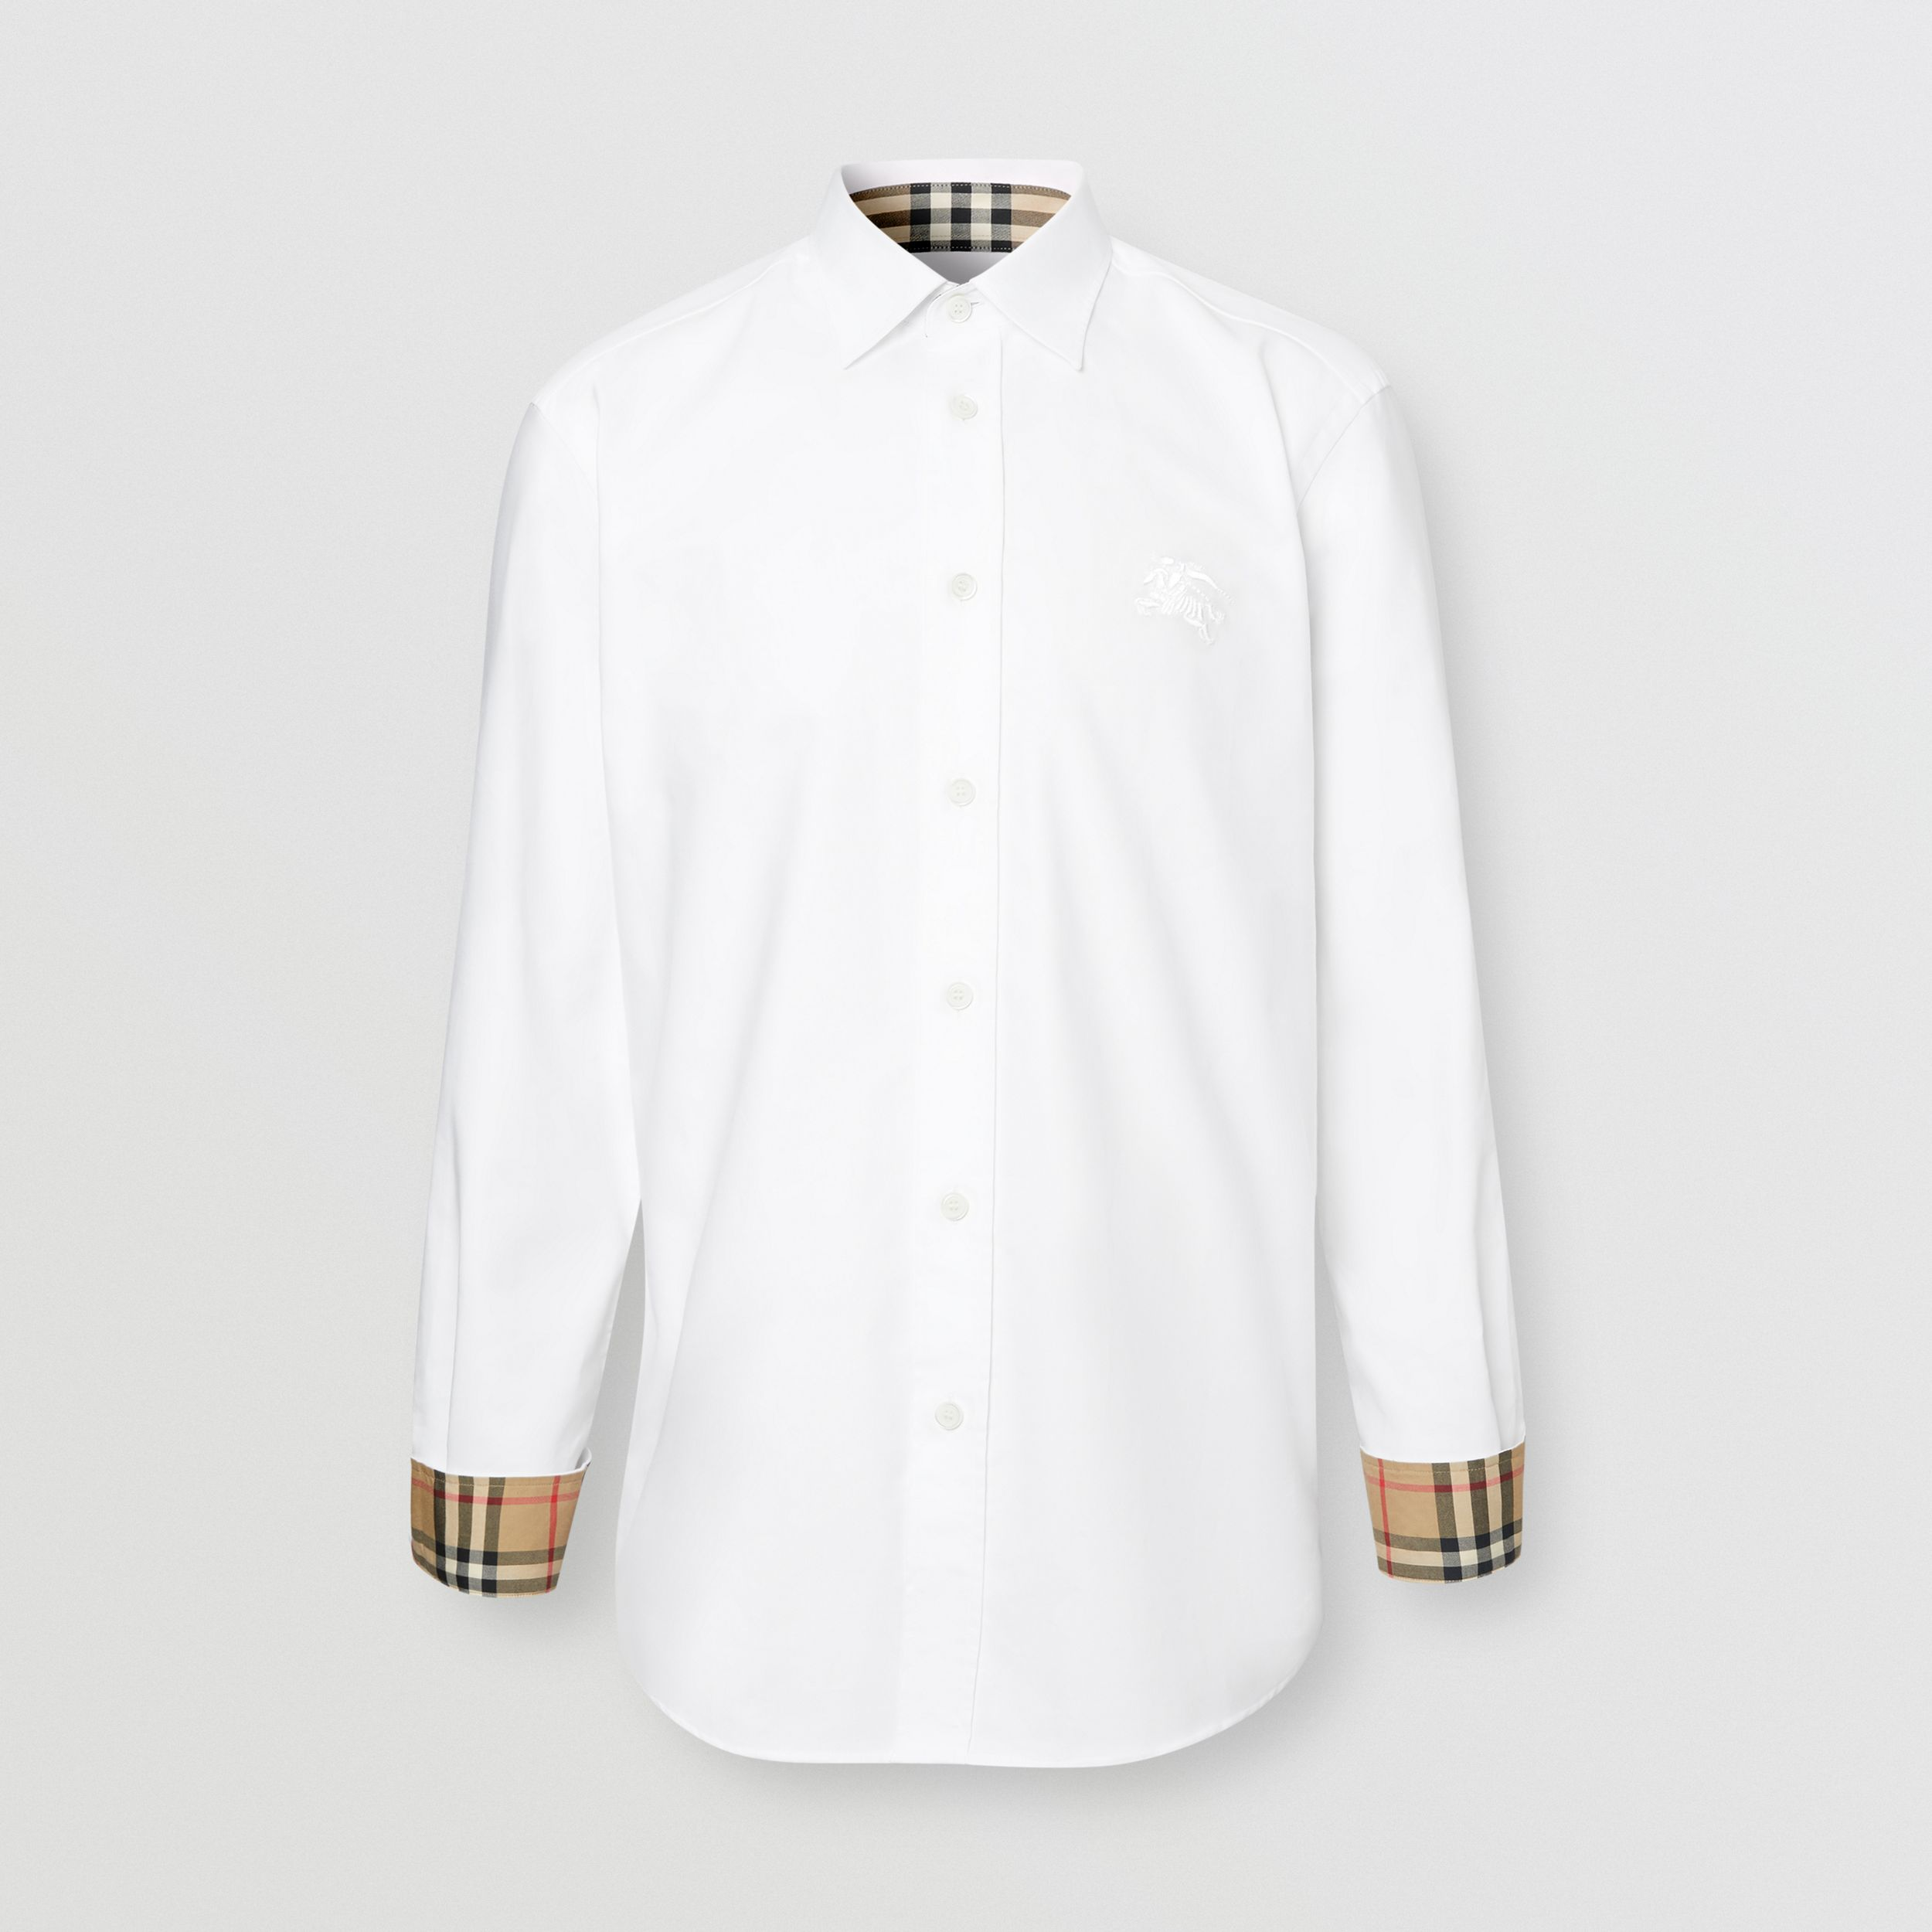 Embroidered EKD Stretch Cotton Poplin Shirt in White - Men | Burberry - 4